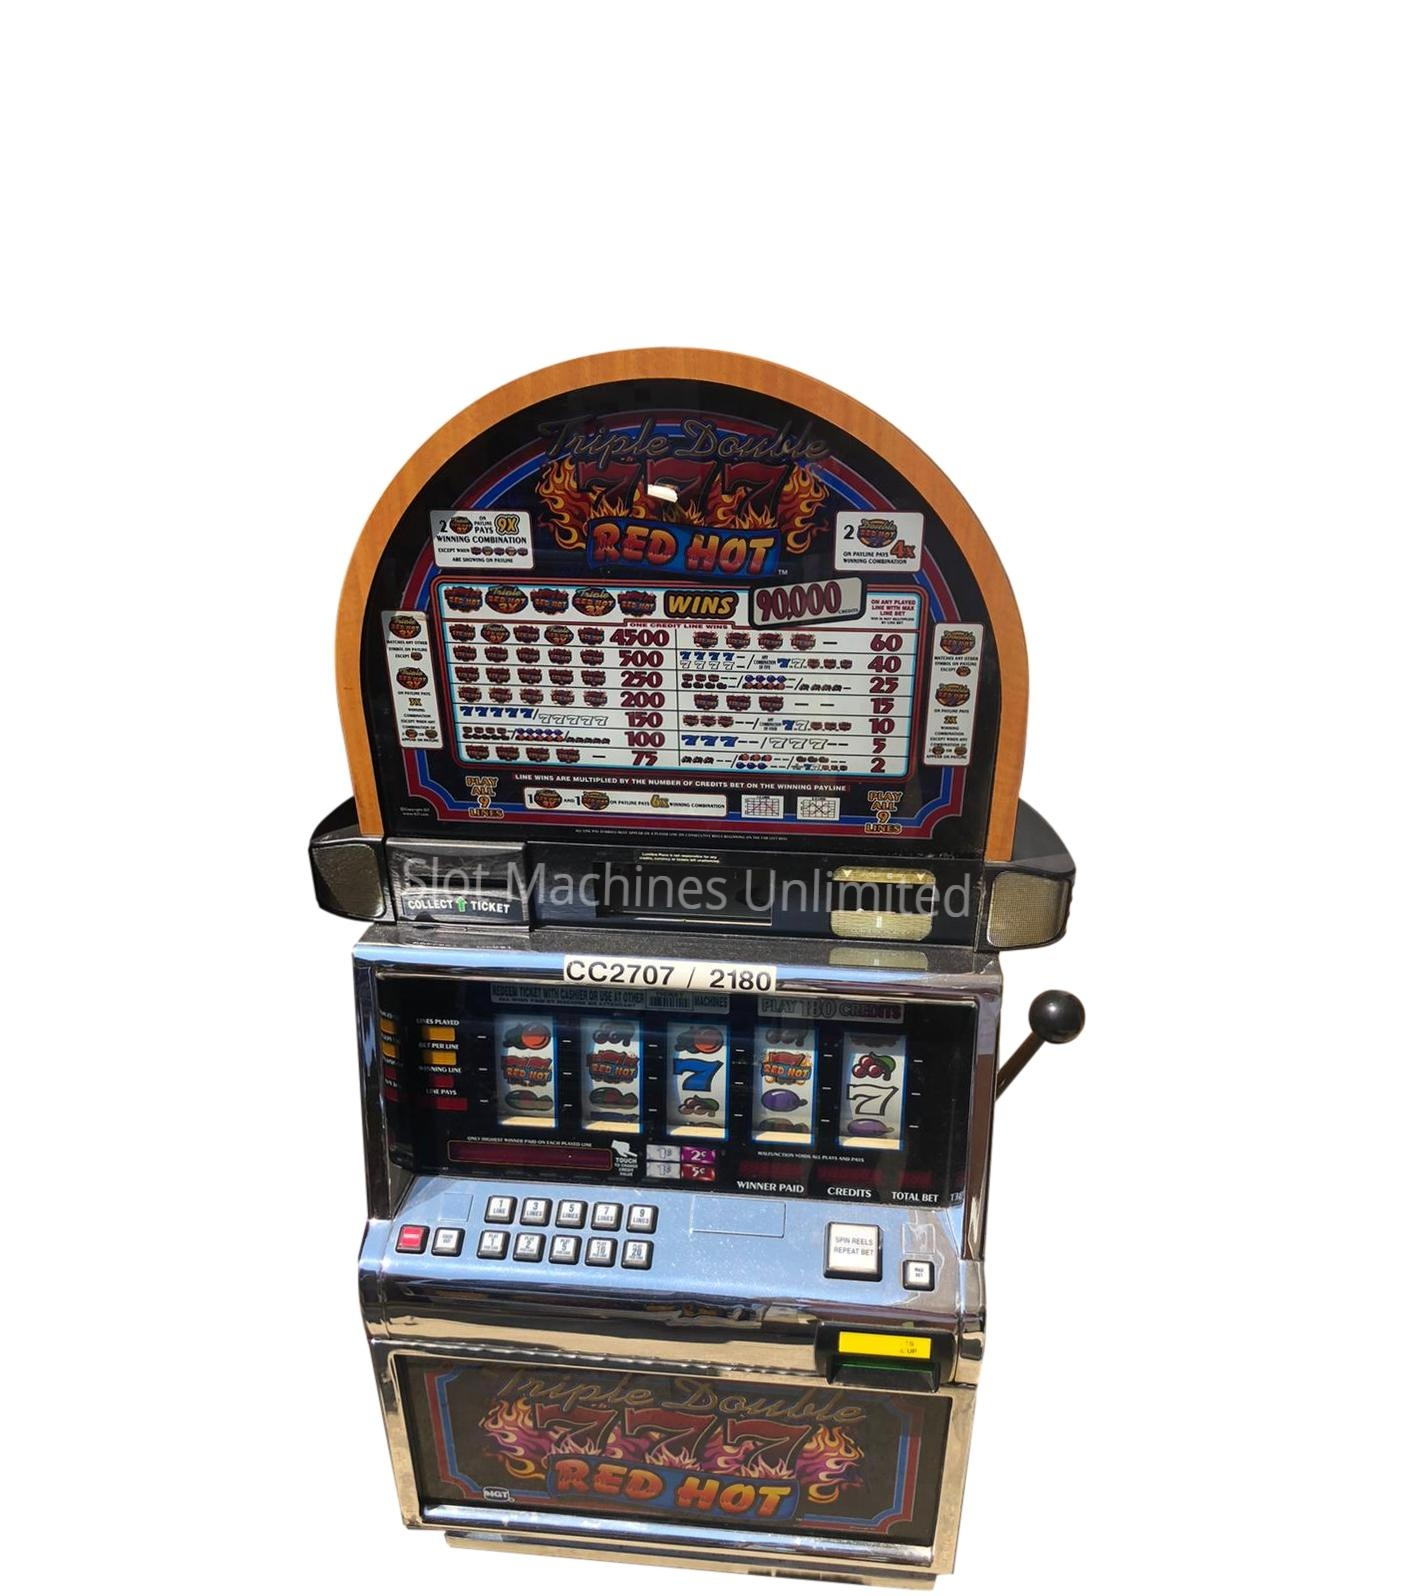 red white and blue 7 slot machines